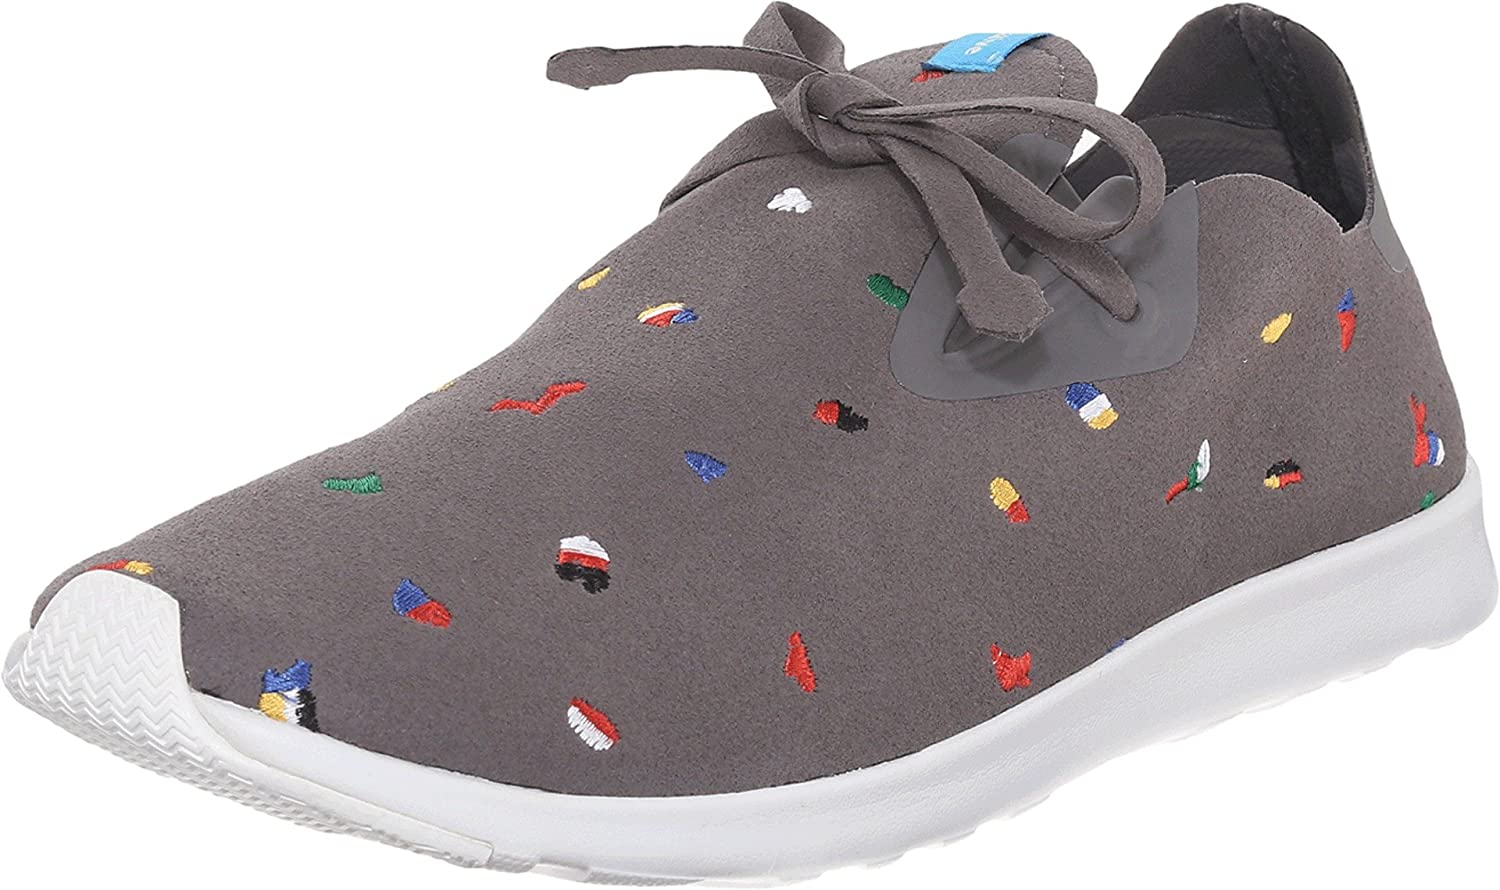 Native Unisex Apollo Moc Fashion Sneaker. B00W2ADJWC 9 B(M) US Women / 7 D(M) US Men|Chipped Dublin Grey/Shell White Rubber